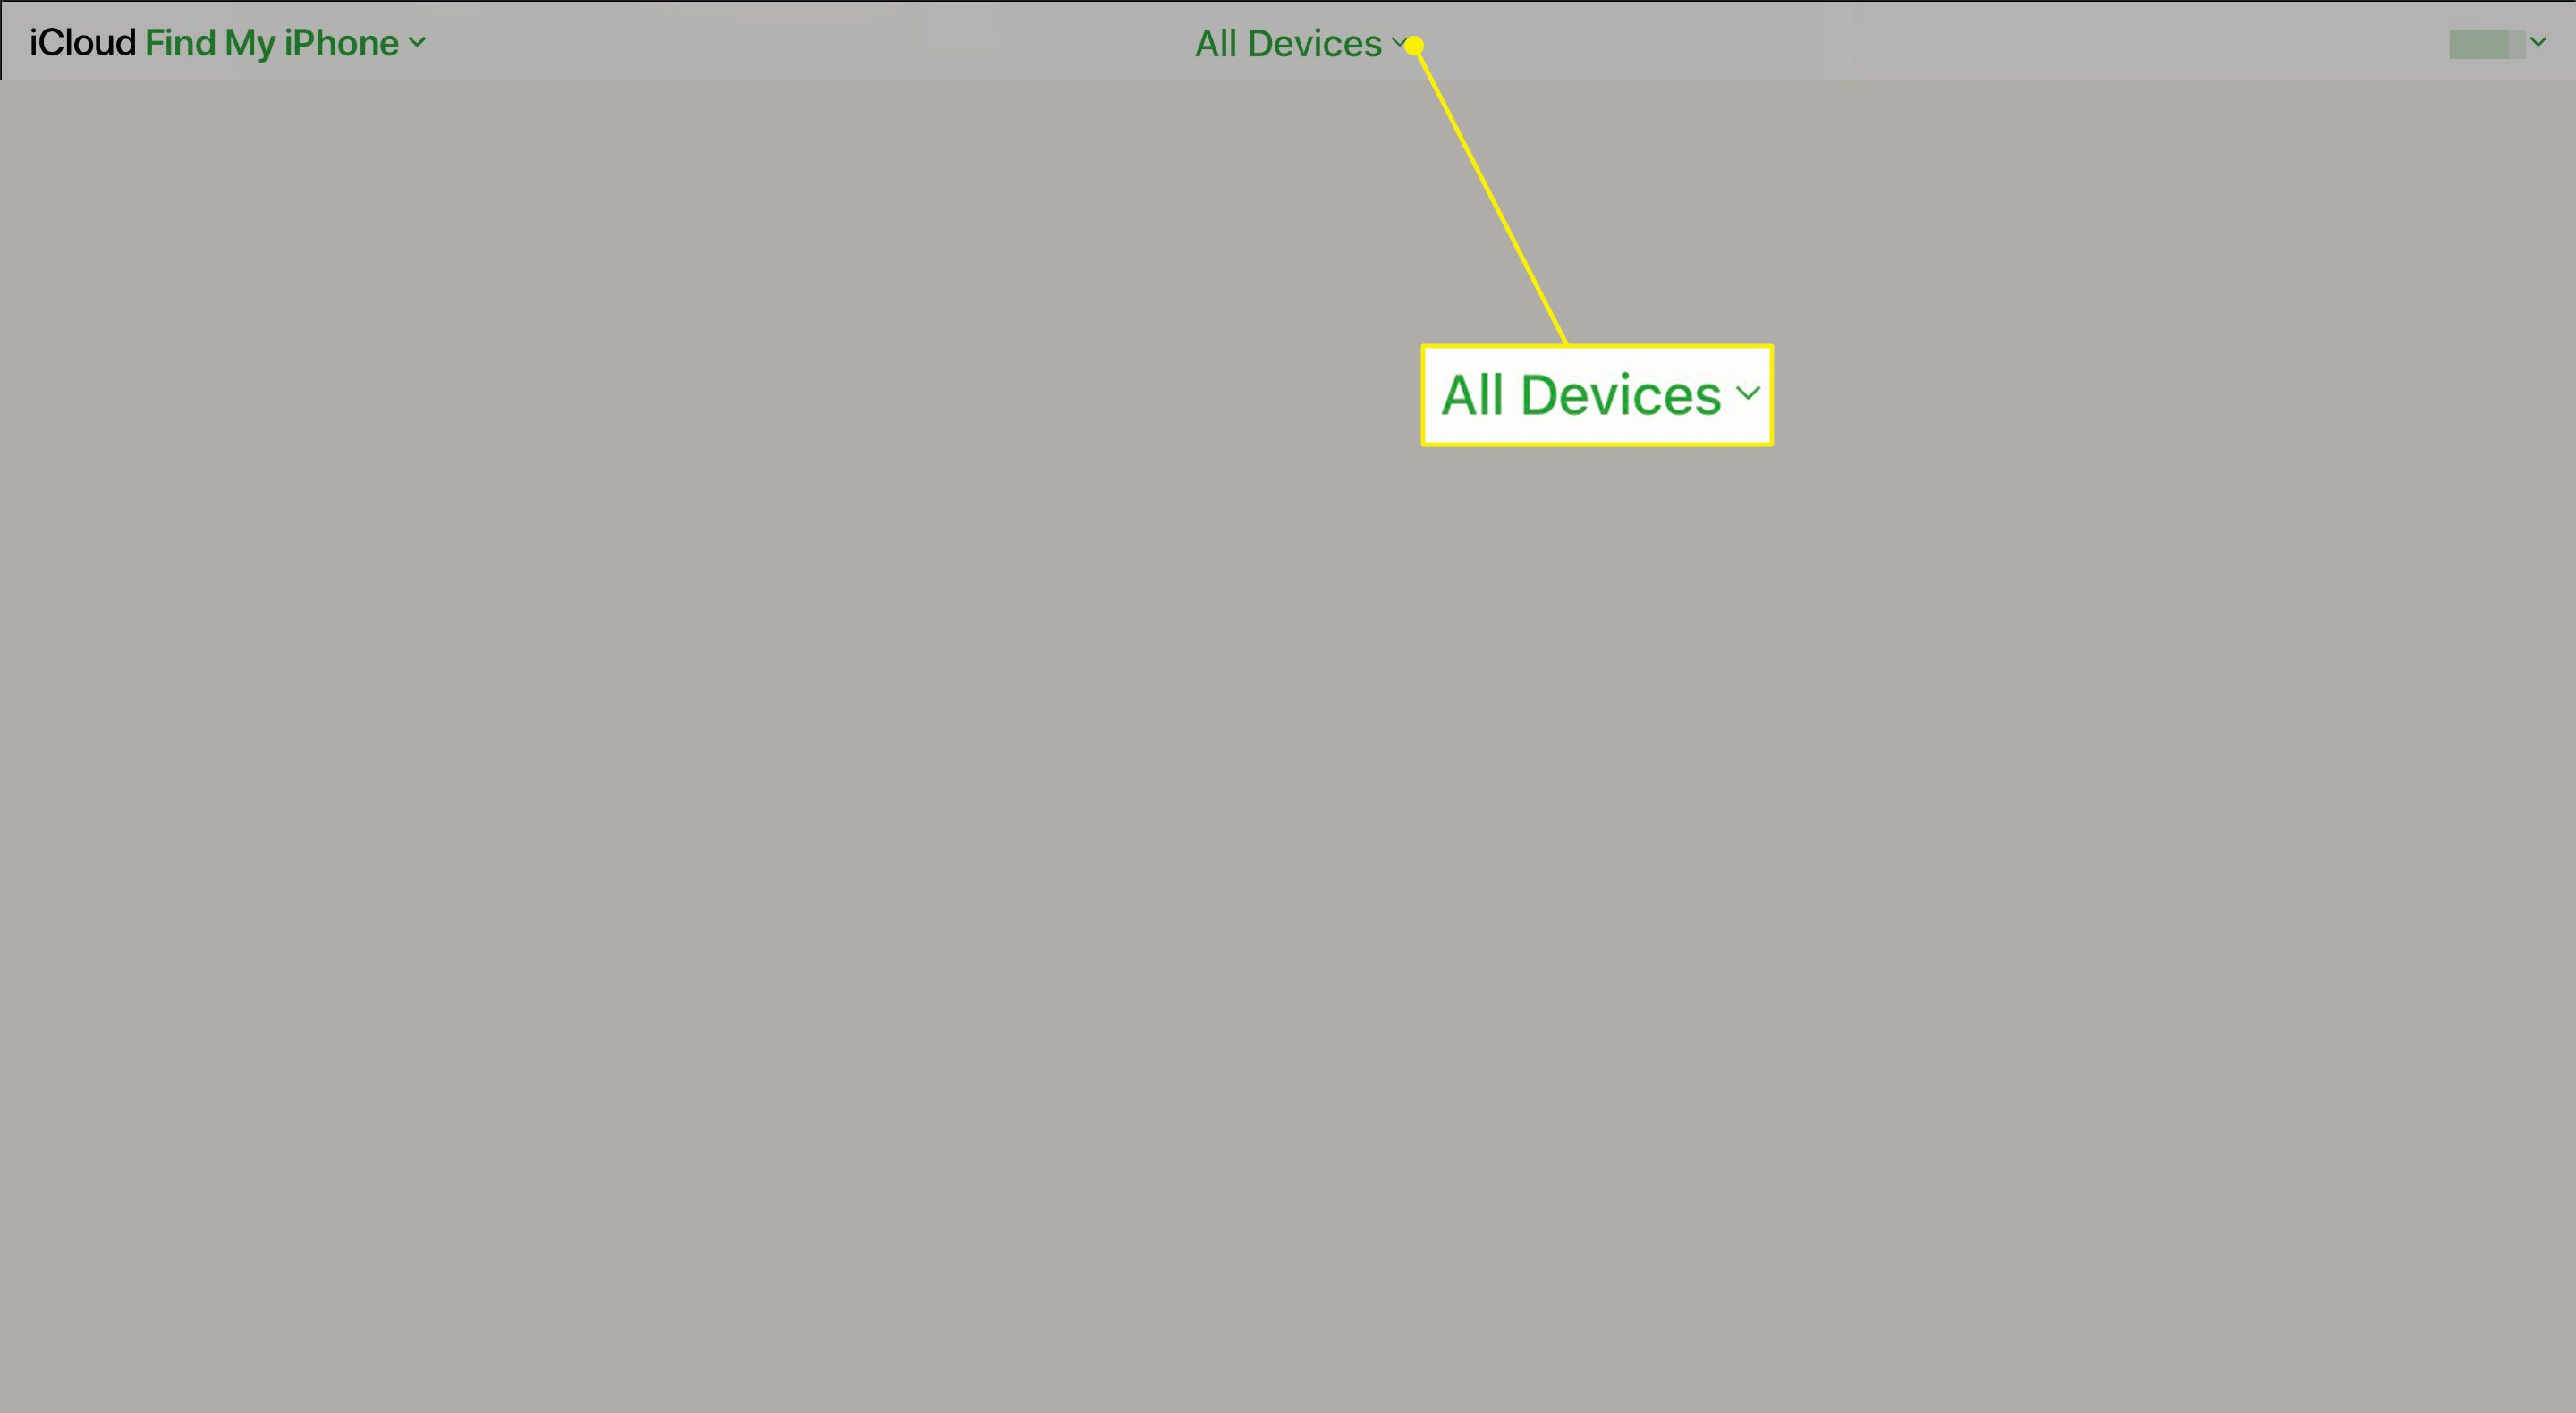 All Devices on iCloud